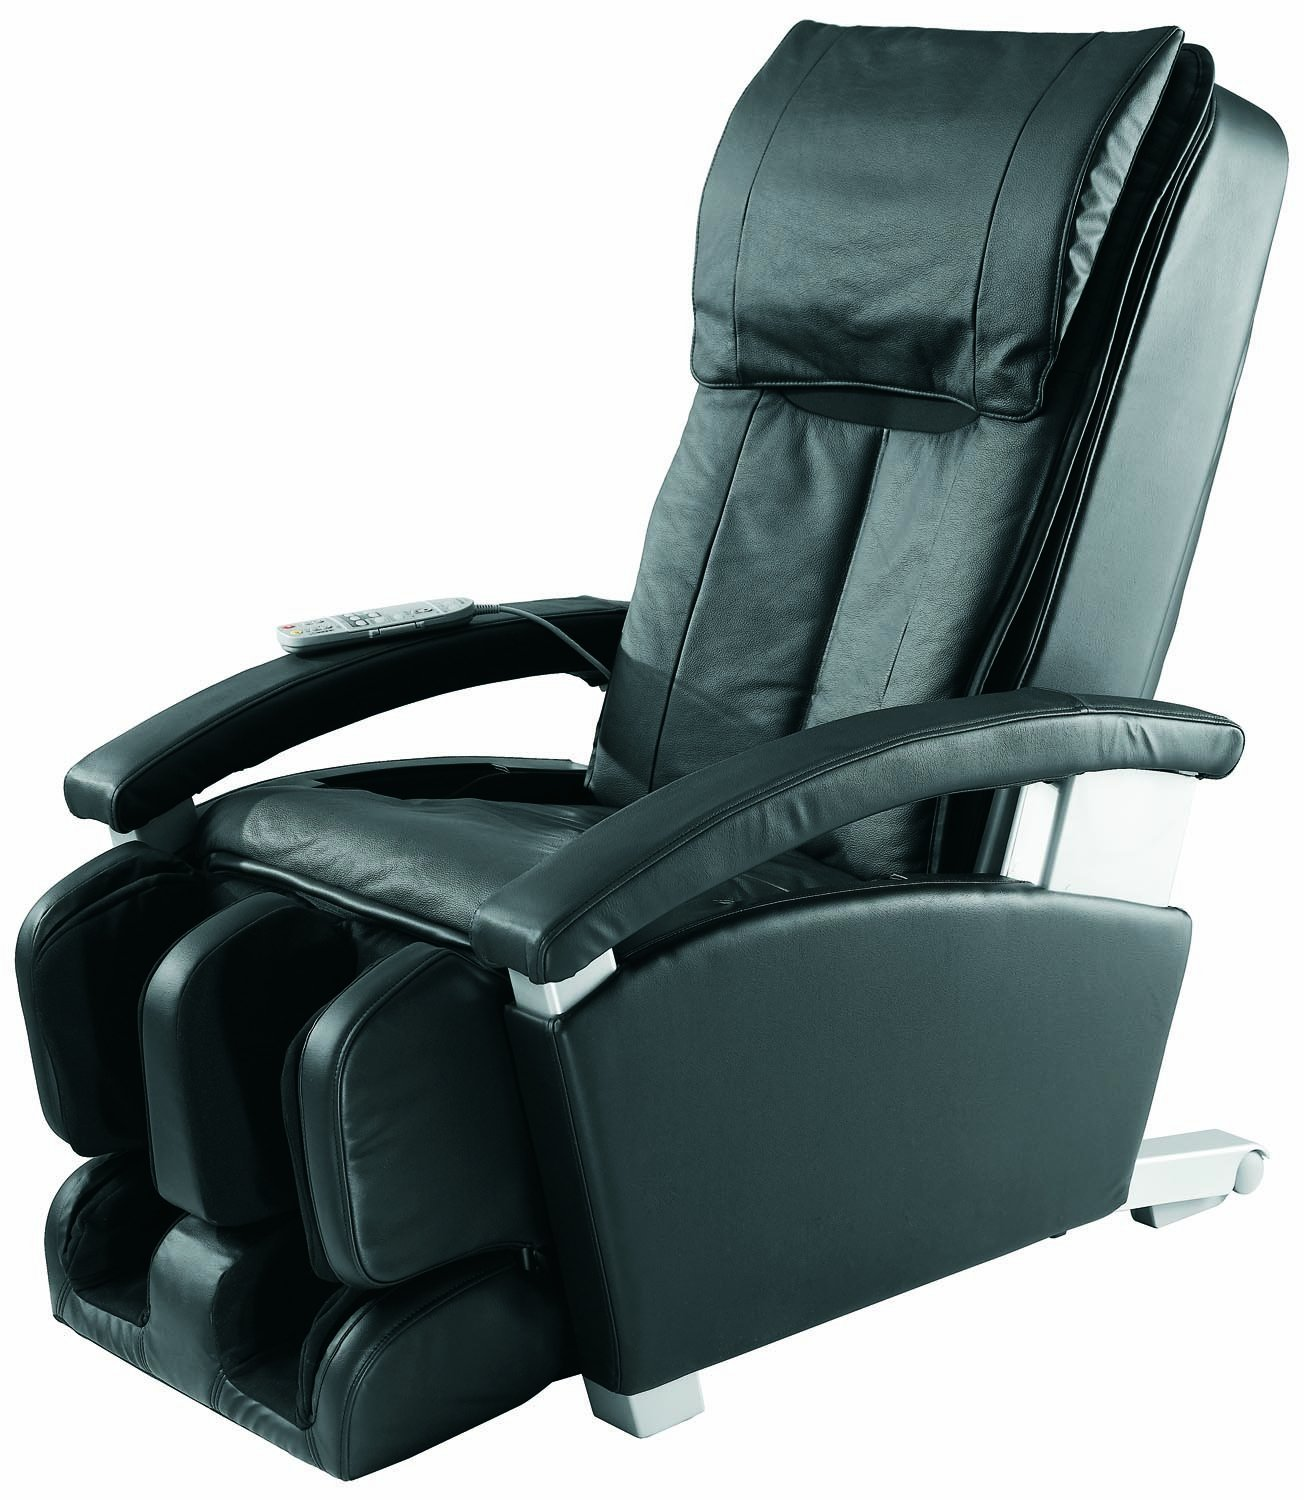 Inada Sogno Dreamwave Massage Chair Inada Dreamwave Massage Chair